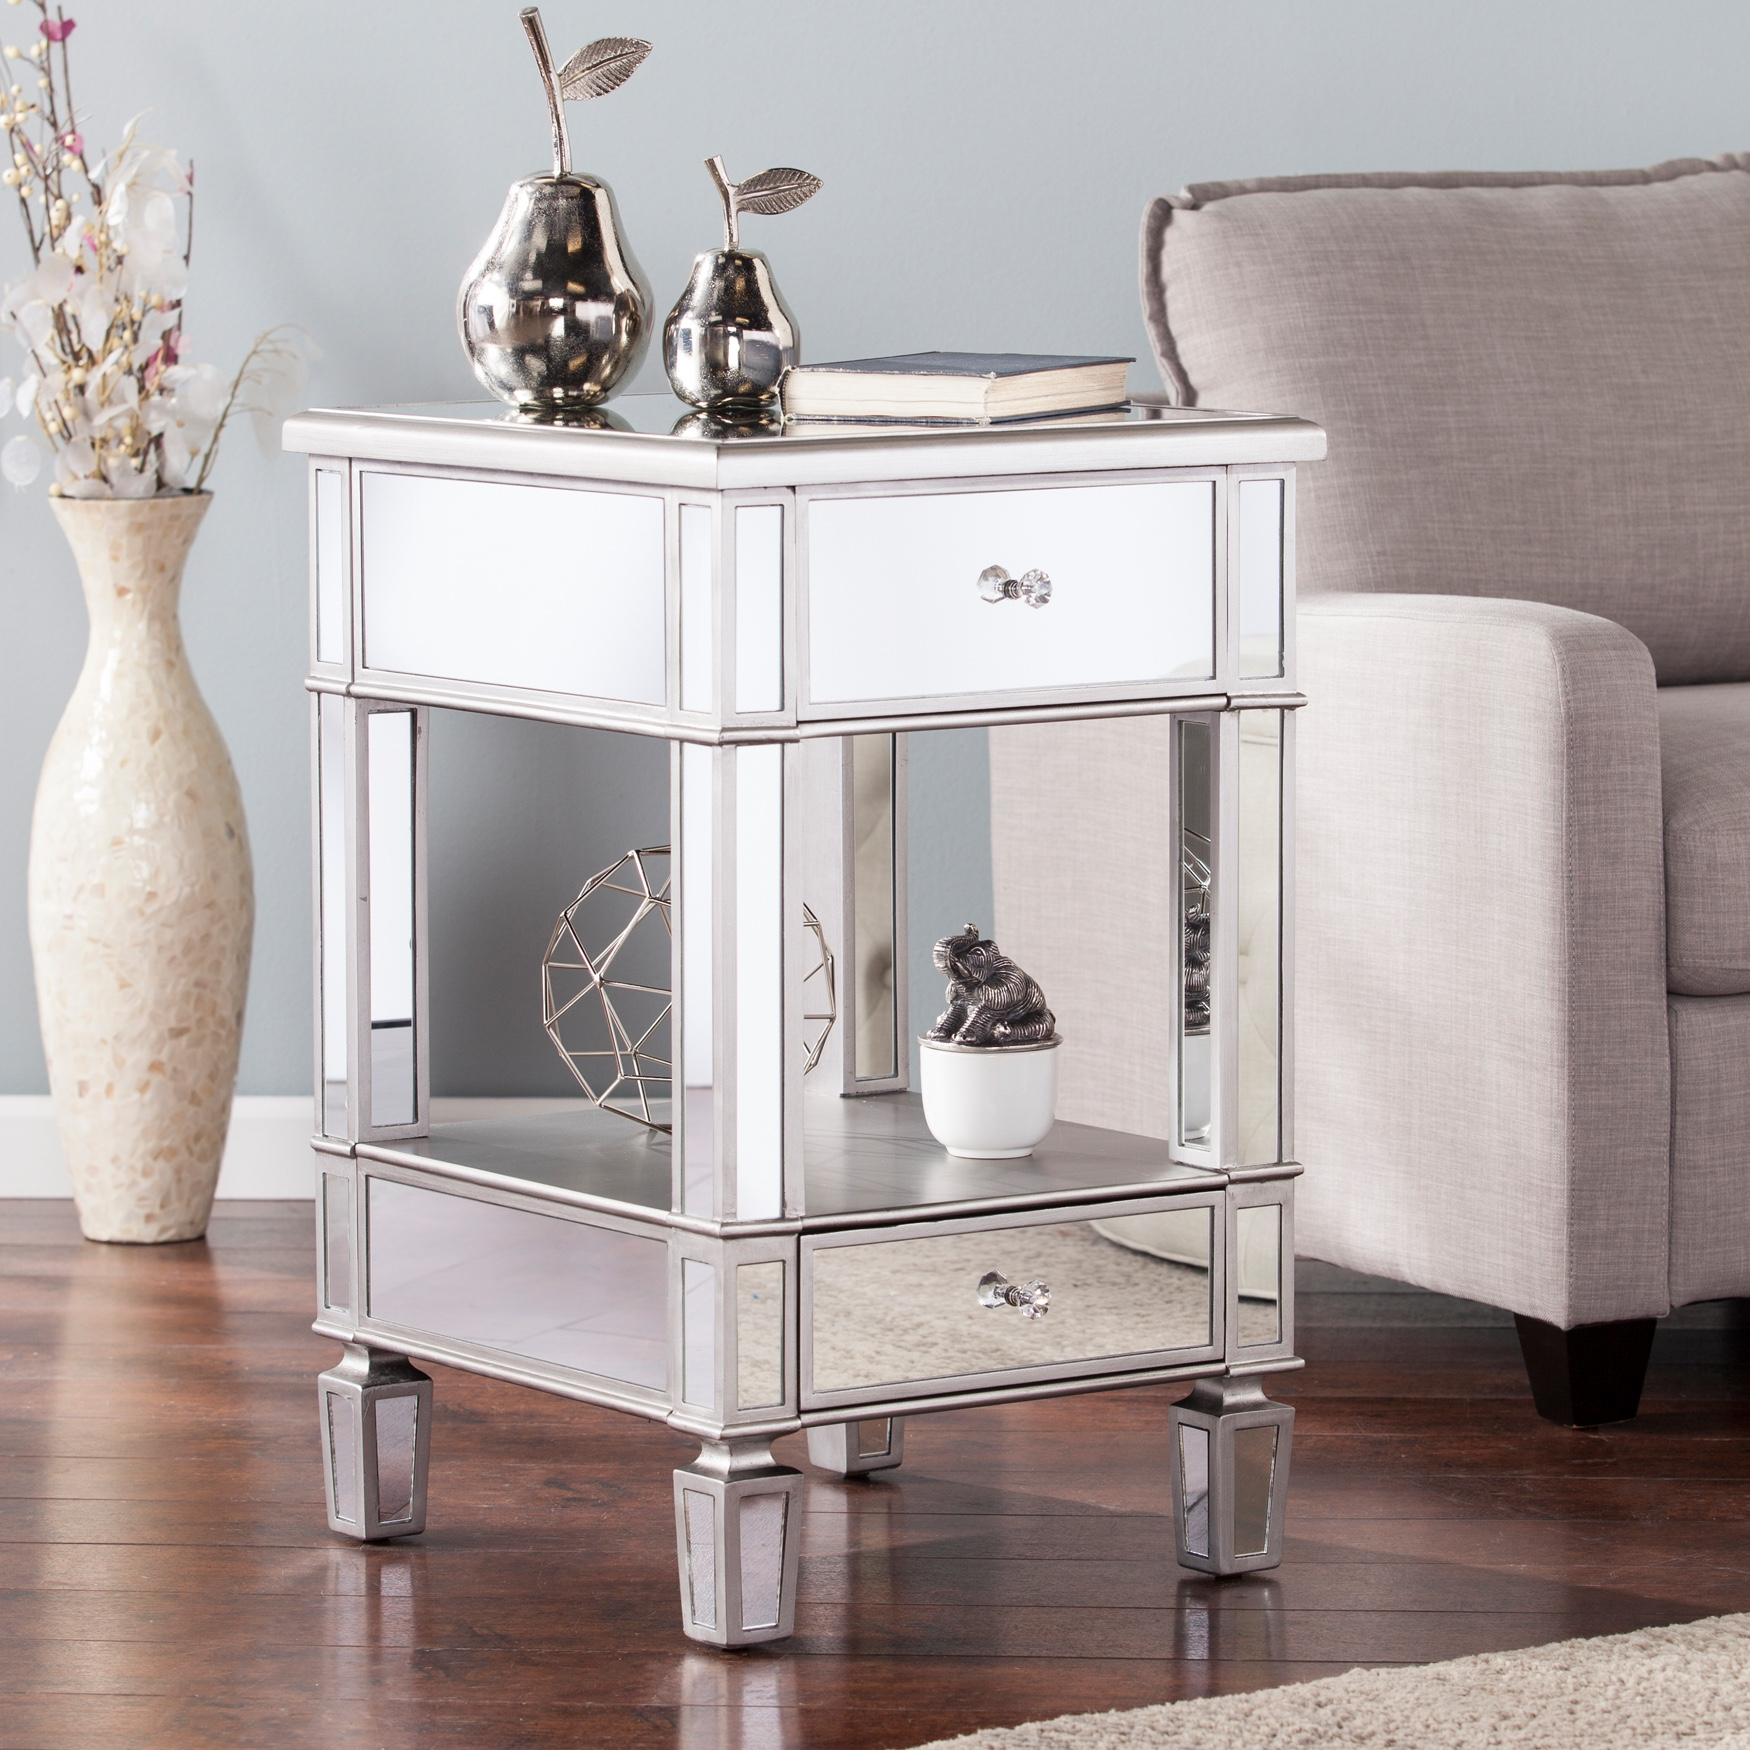 Wedlyn Mirrored Side Table, SILVER